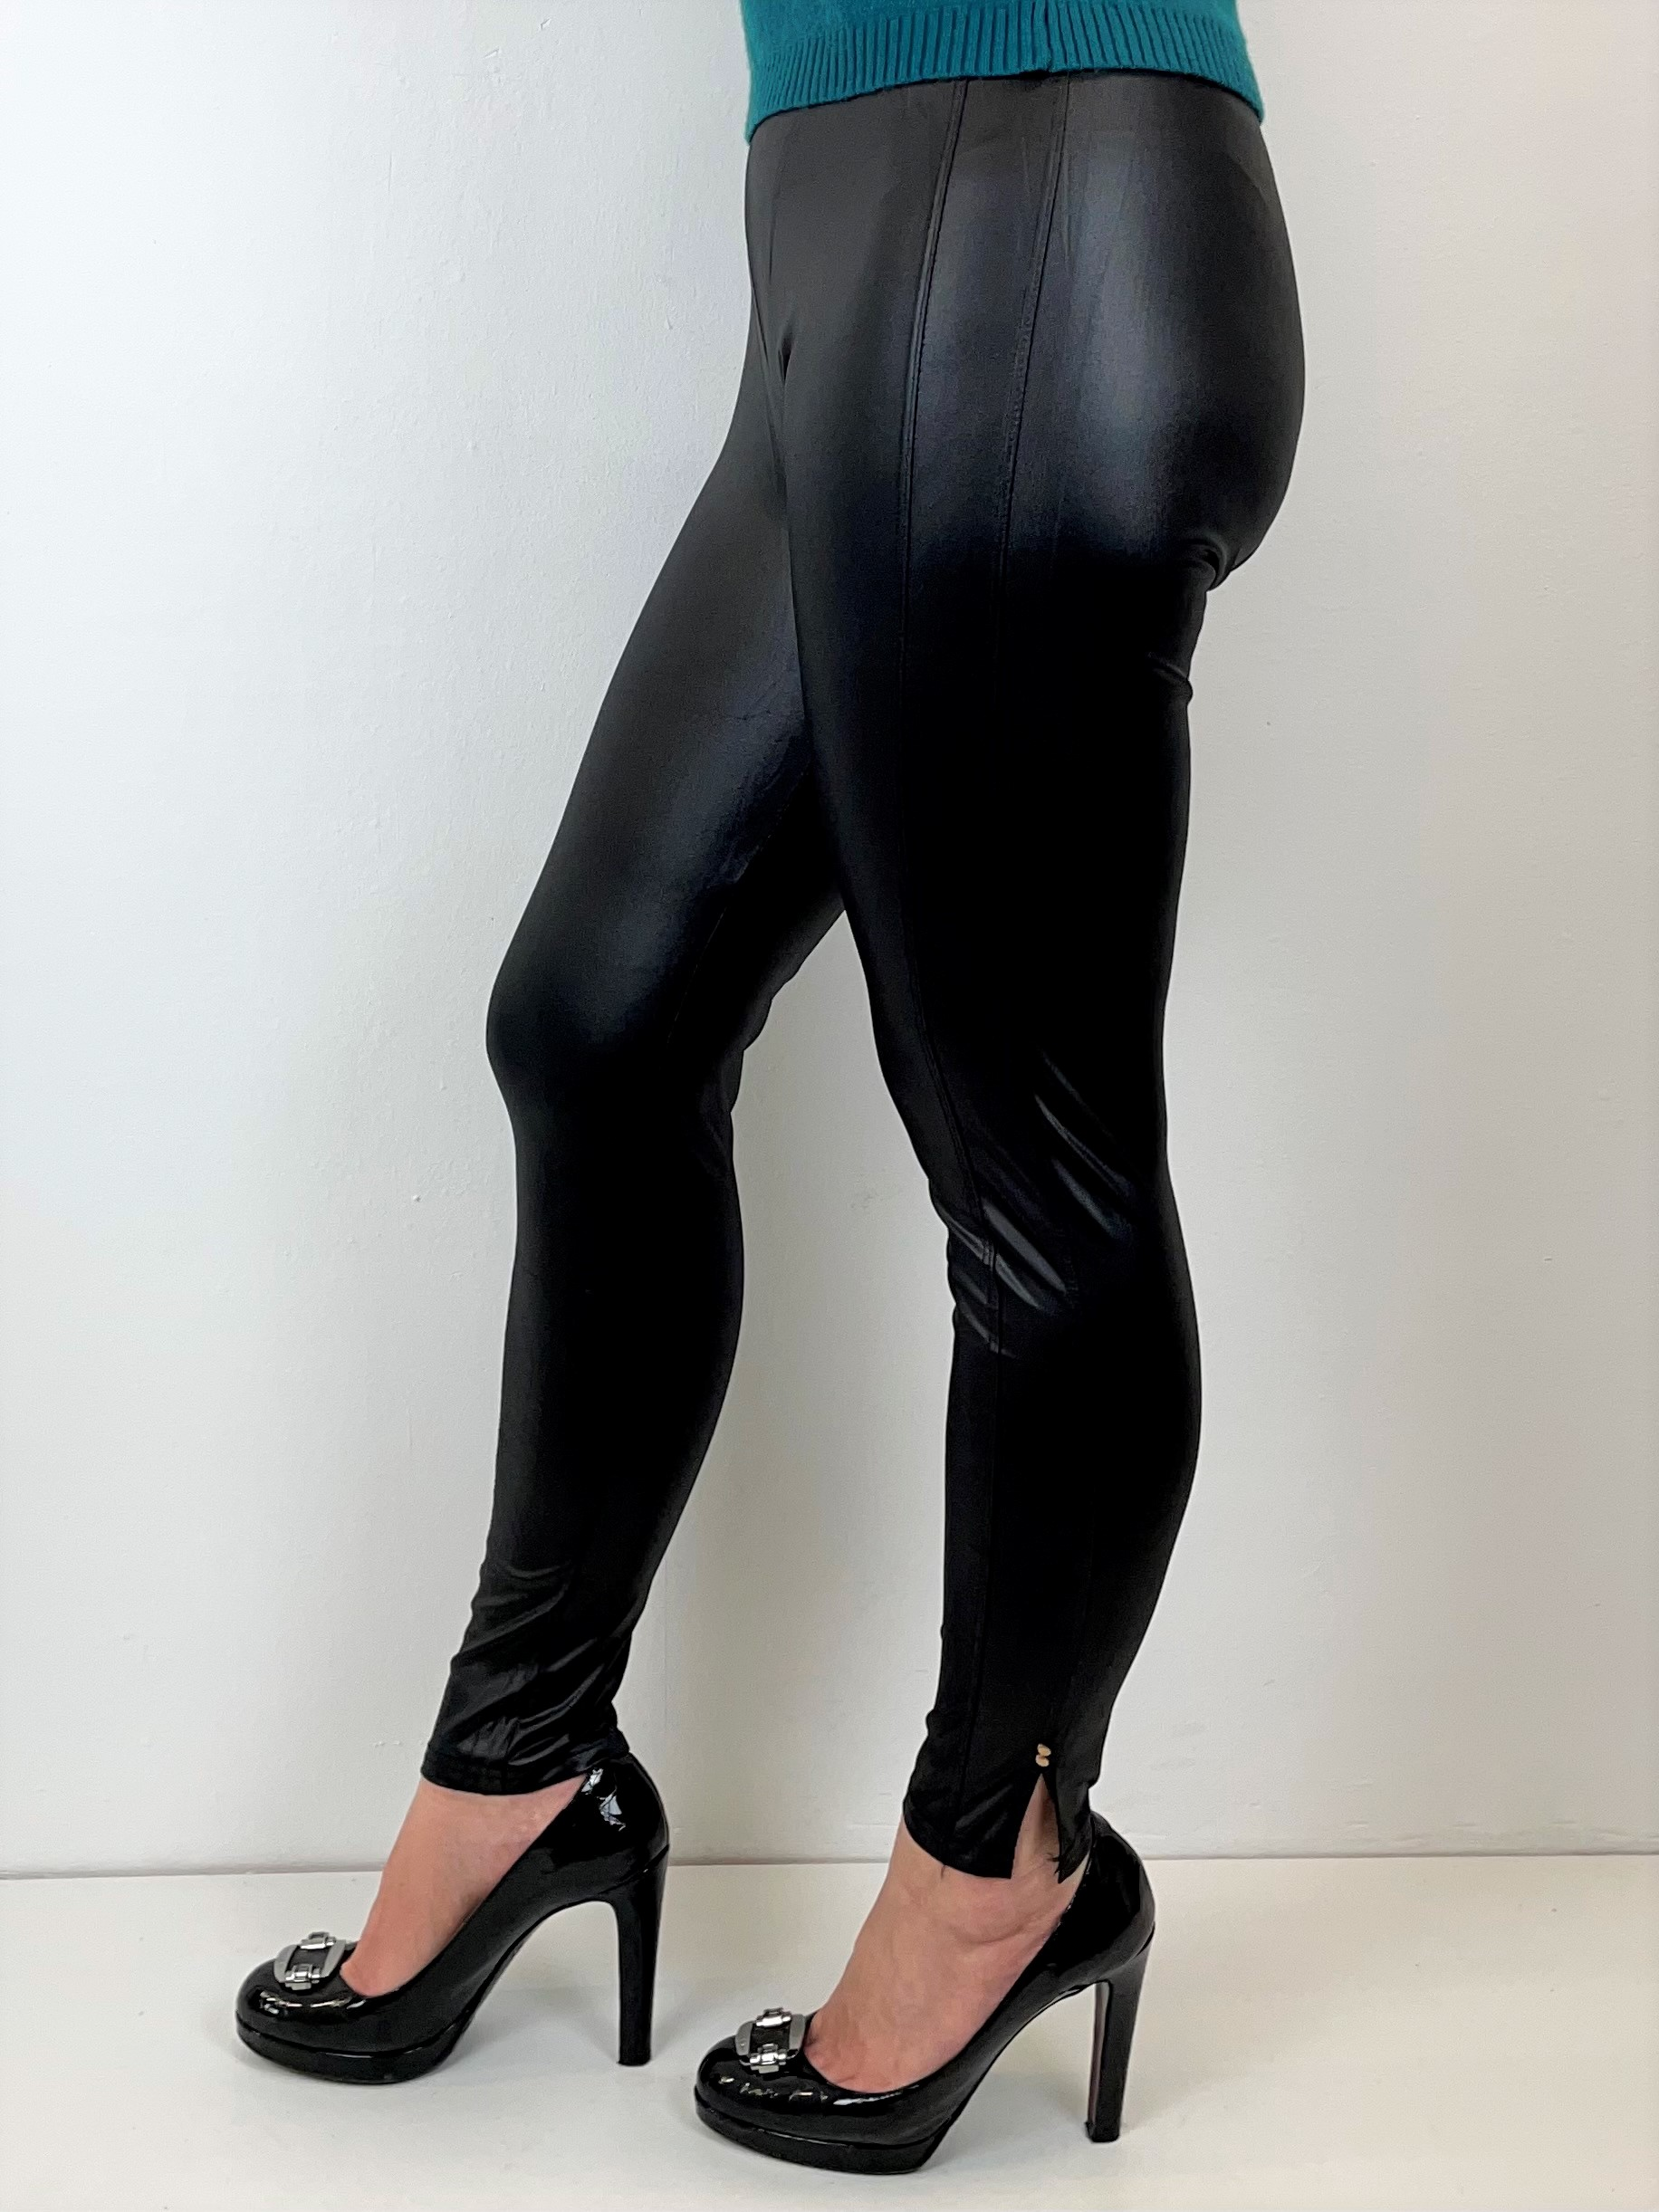 Schwarze Leggings in Lack-Optik